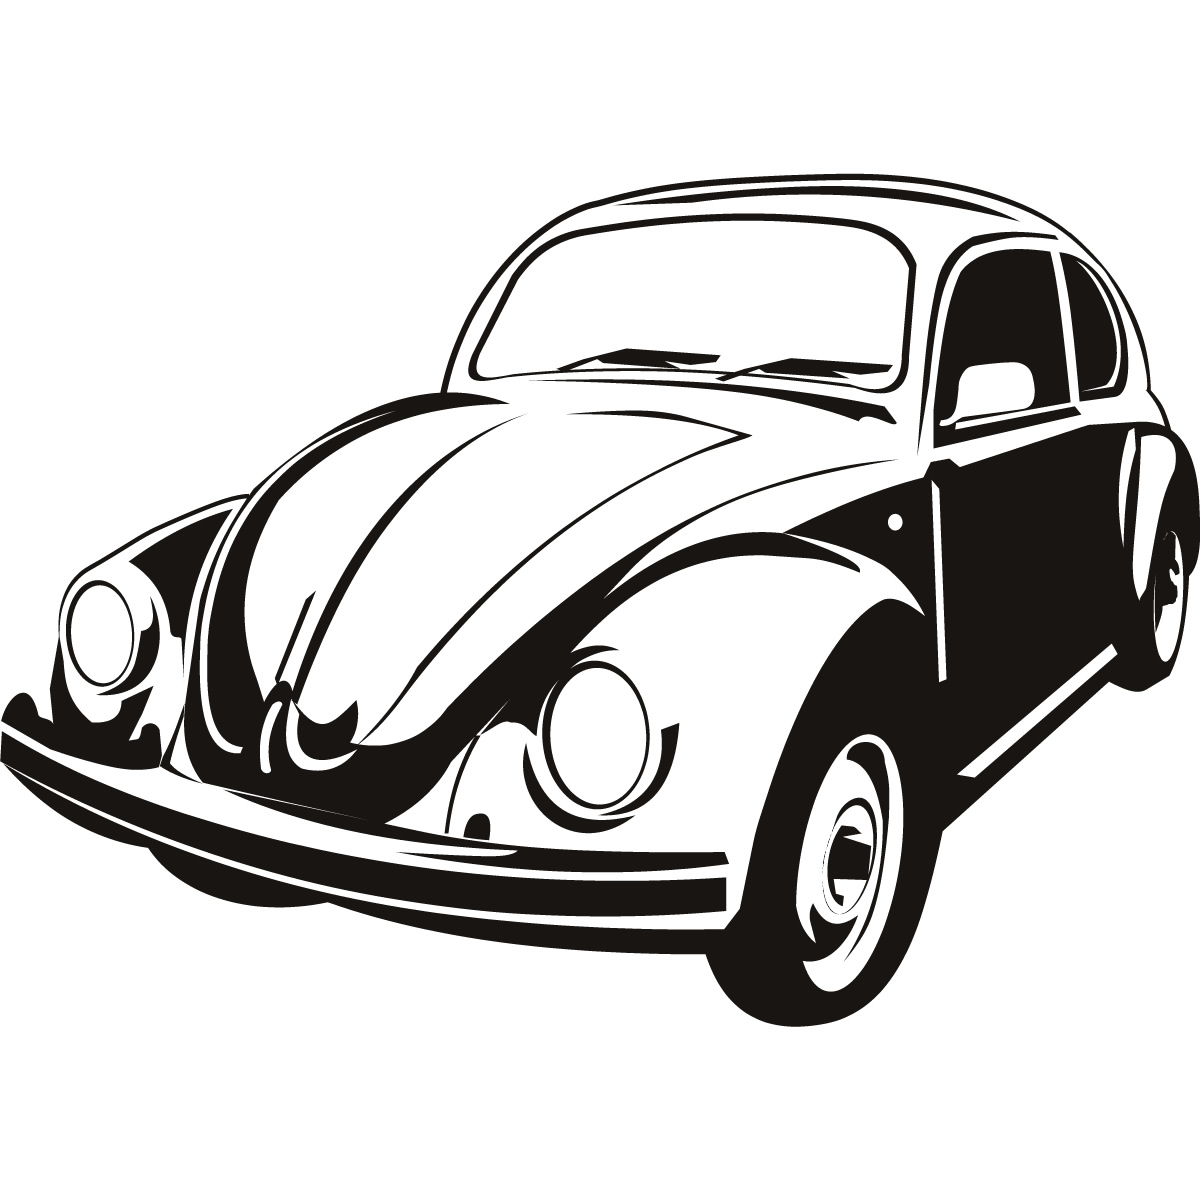 Vw Bug ClipartVw Bug Clipart